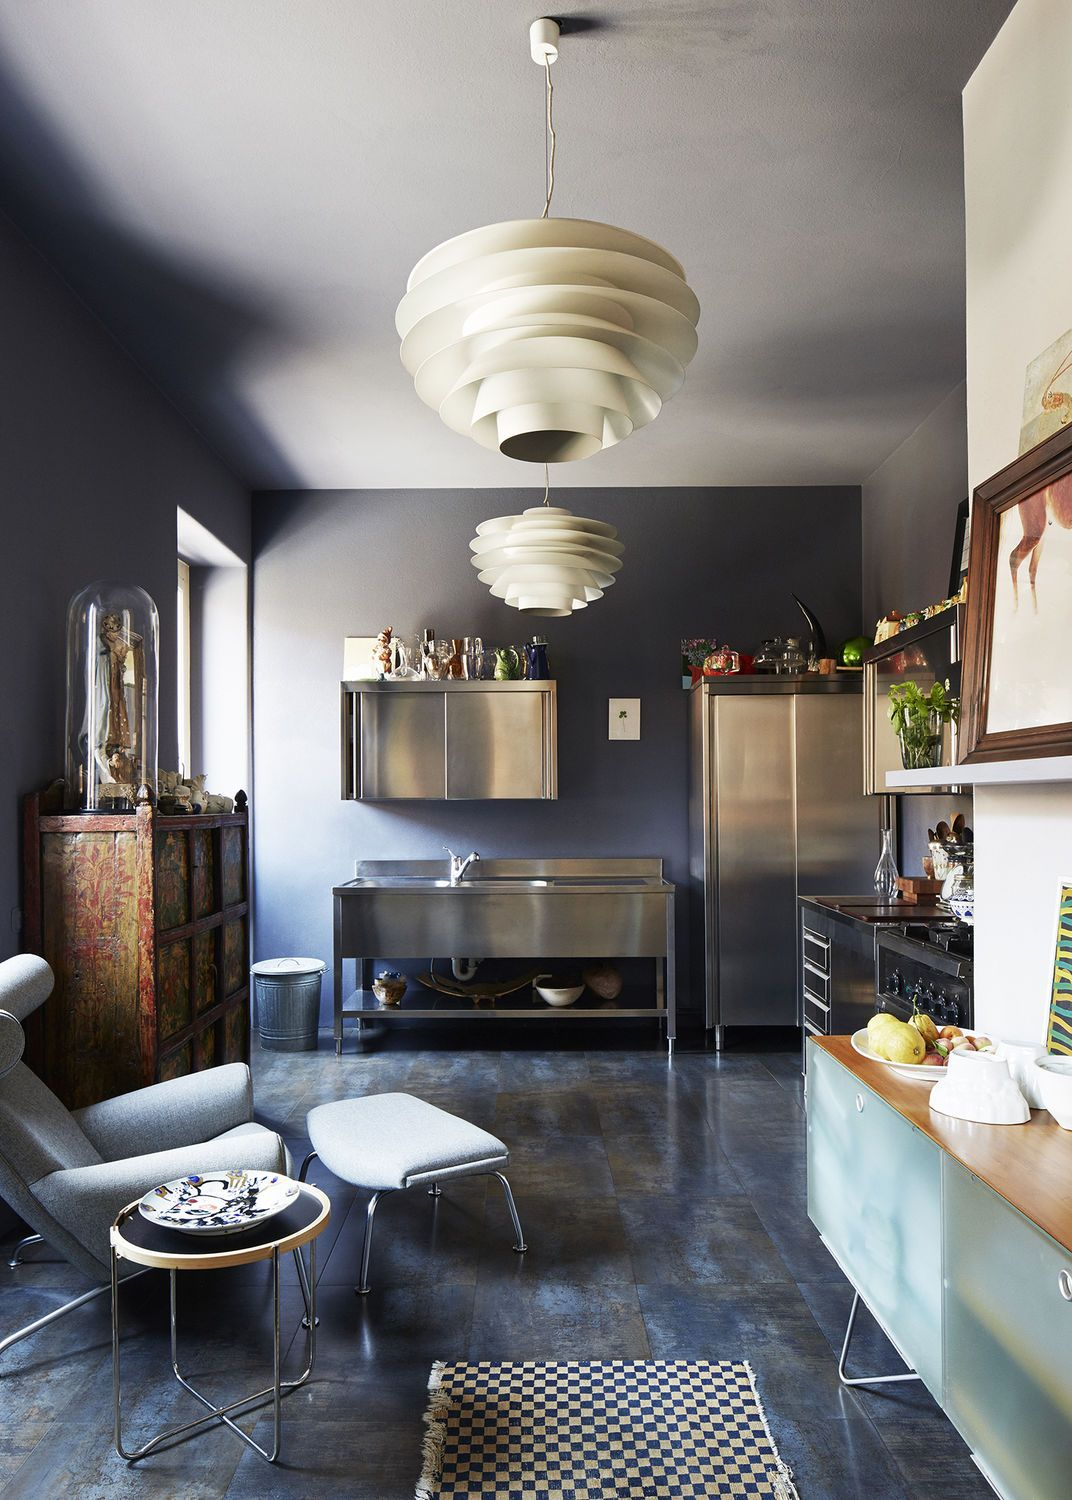 Simon watson massimo alba icon design italy decoration gris concept home living room also remodeling pinterest interior and kitchen rh